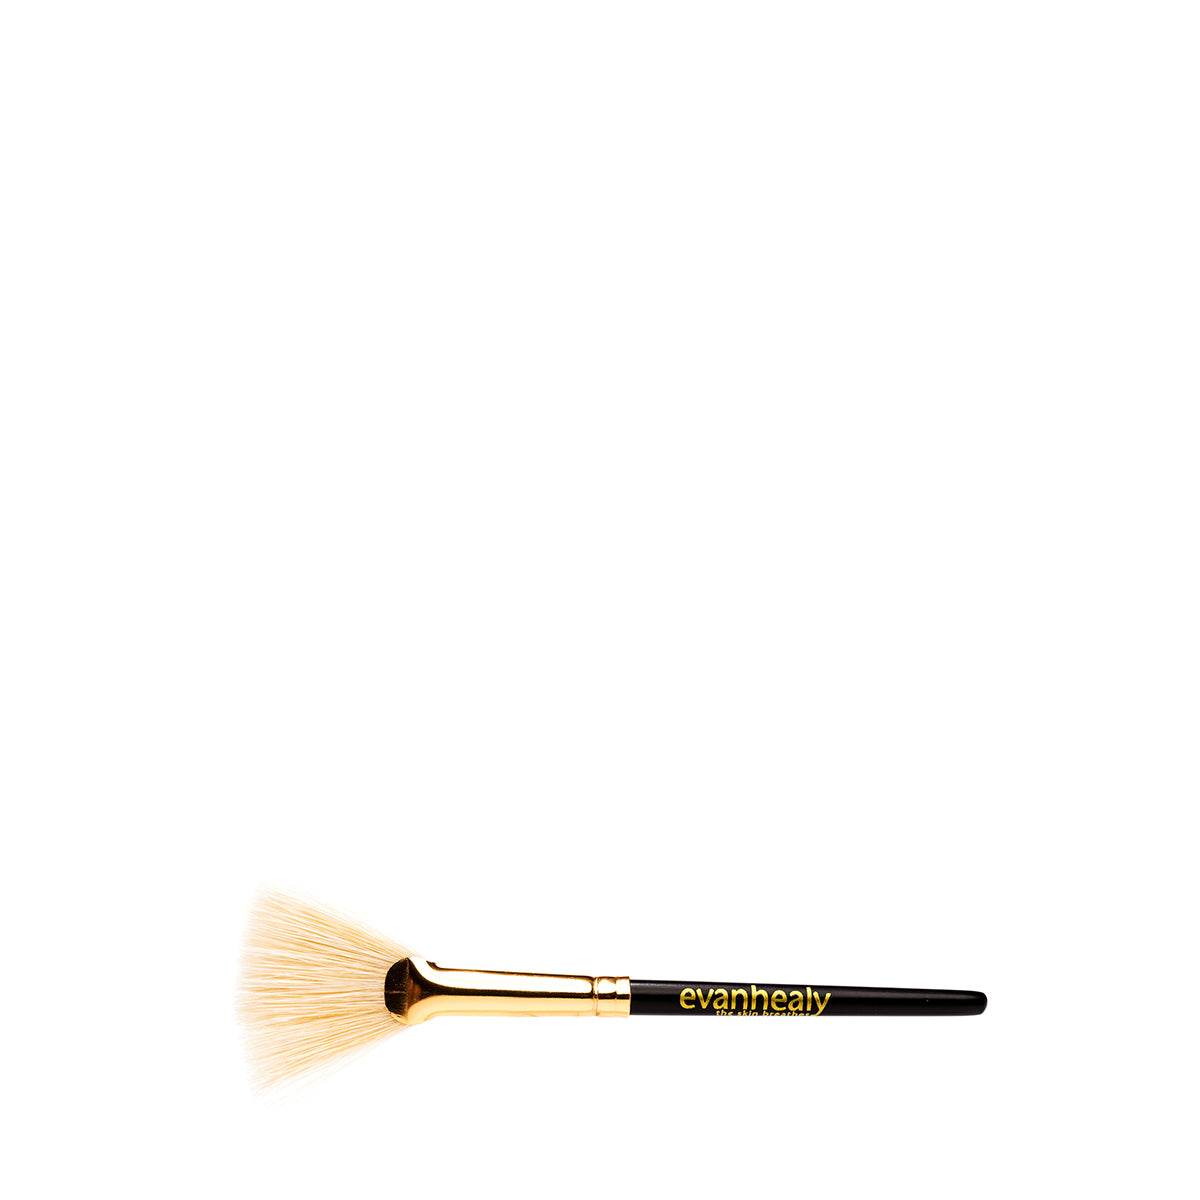 evanhealy Fan Mask Brush